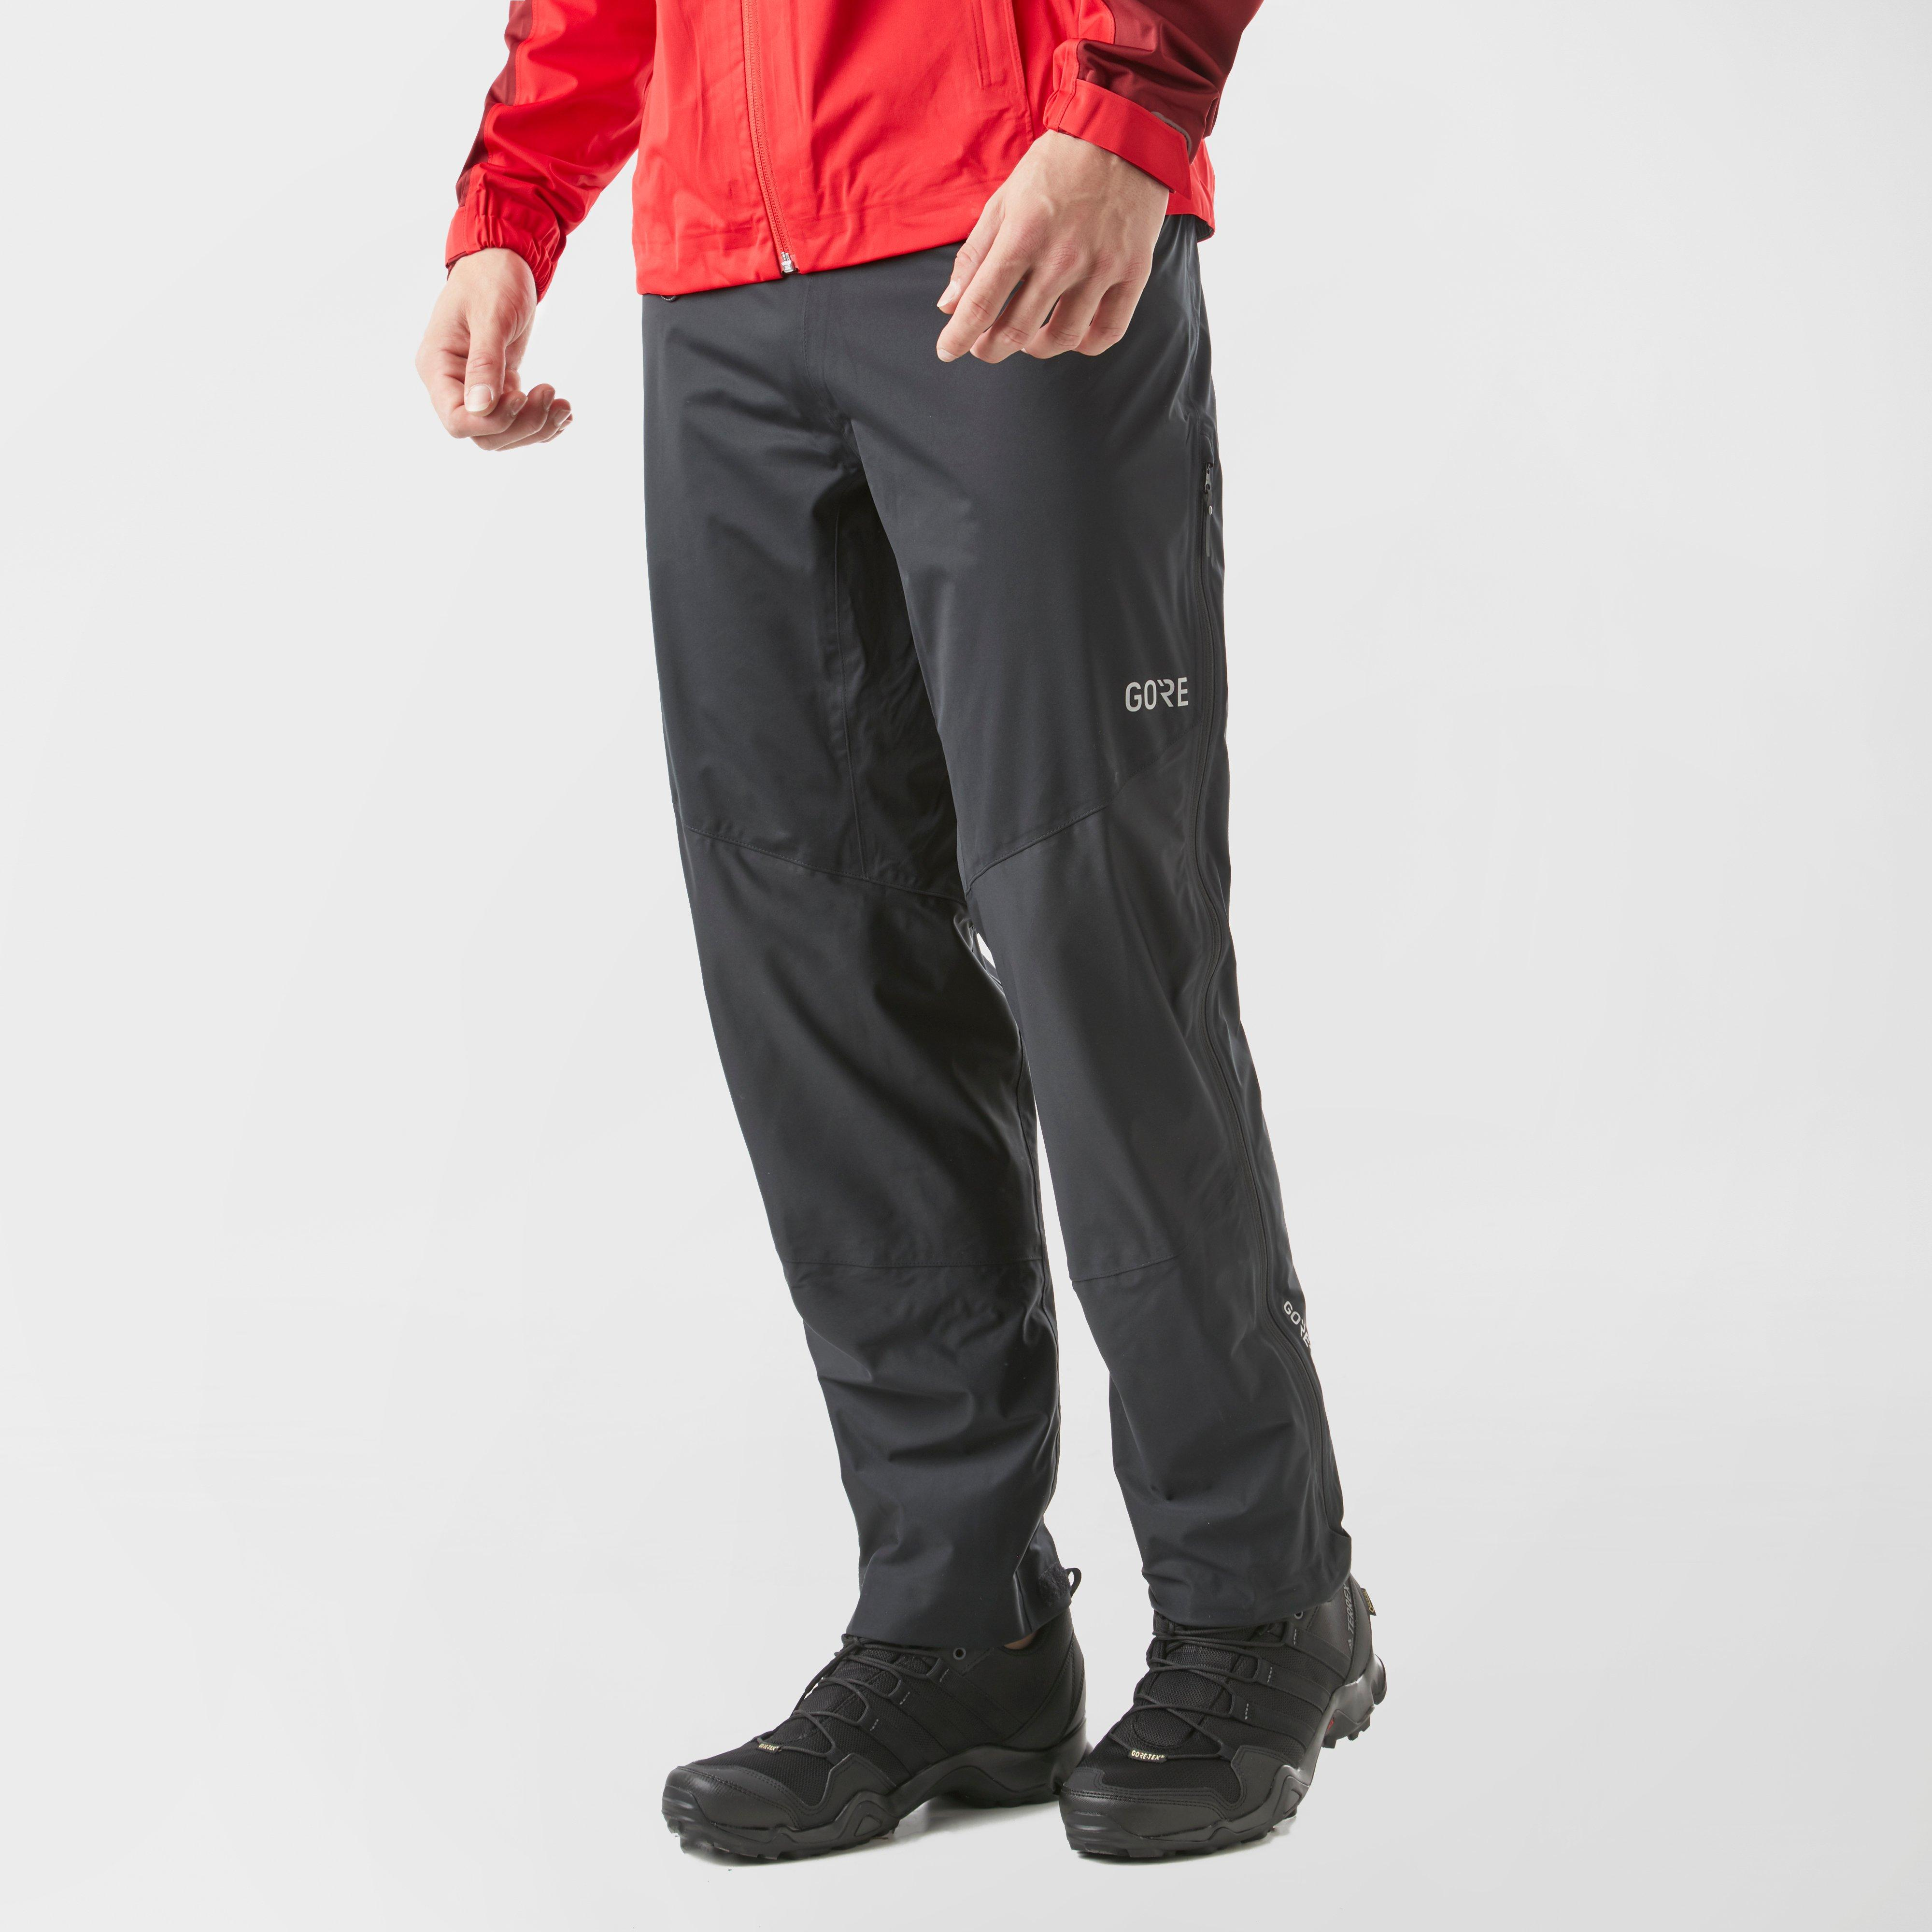 Buy Gore Men's R3 GORE-TEX Active Pant, Black at £135.97 from Blacks